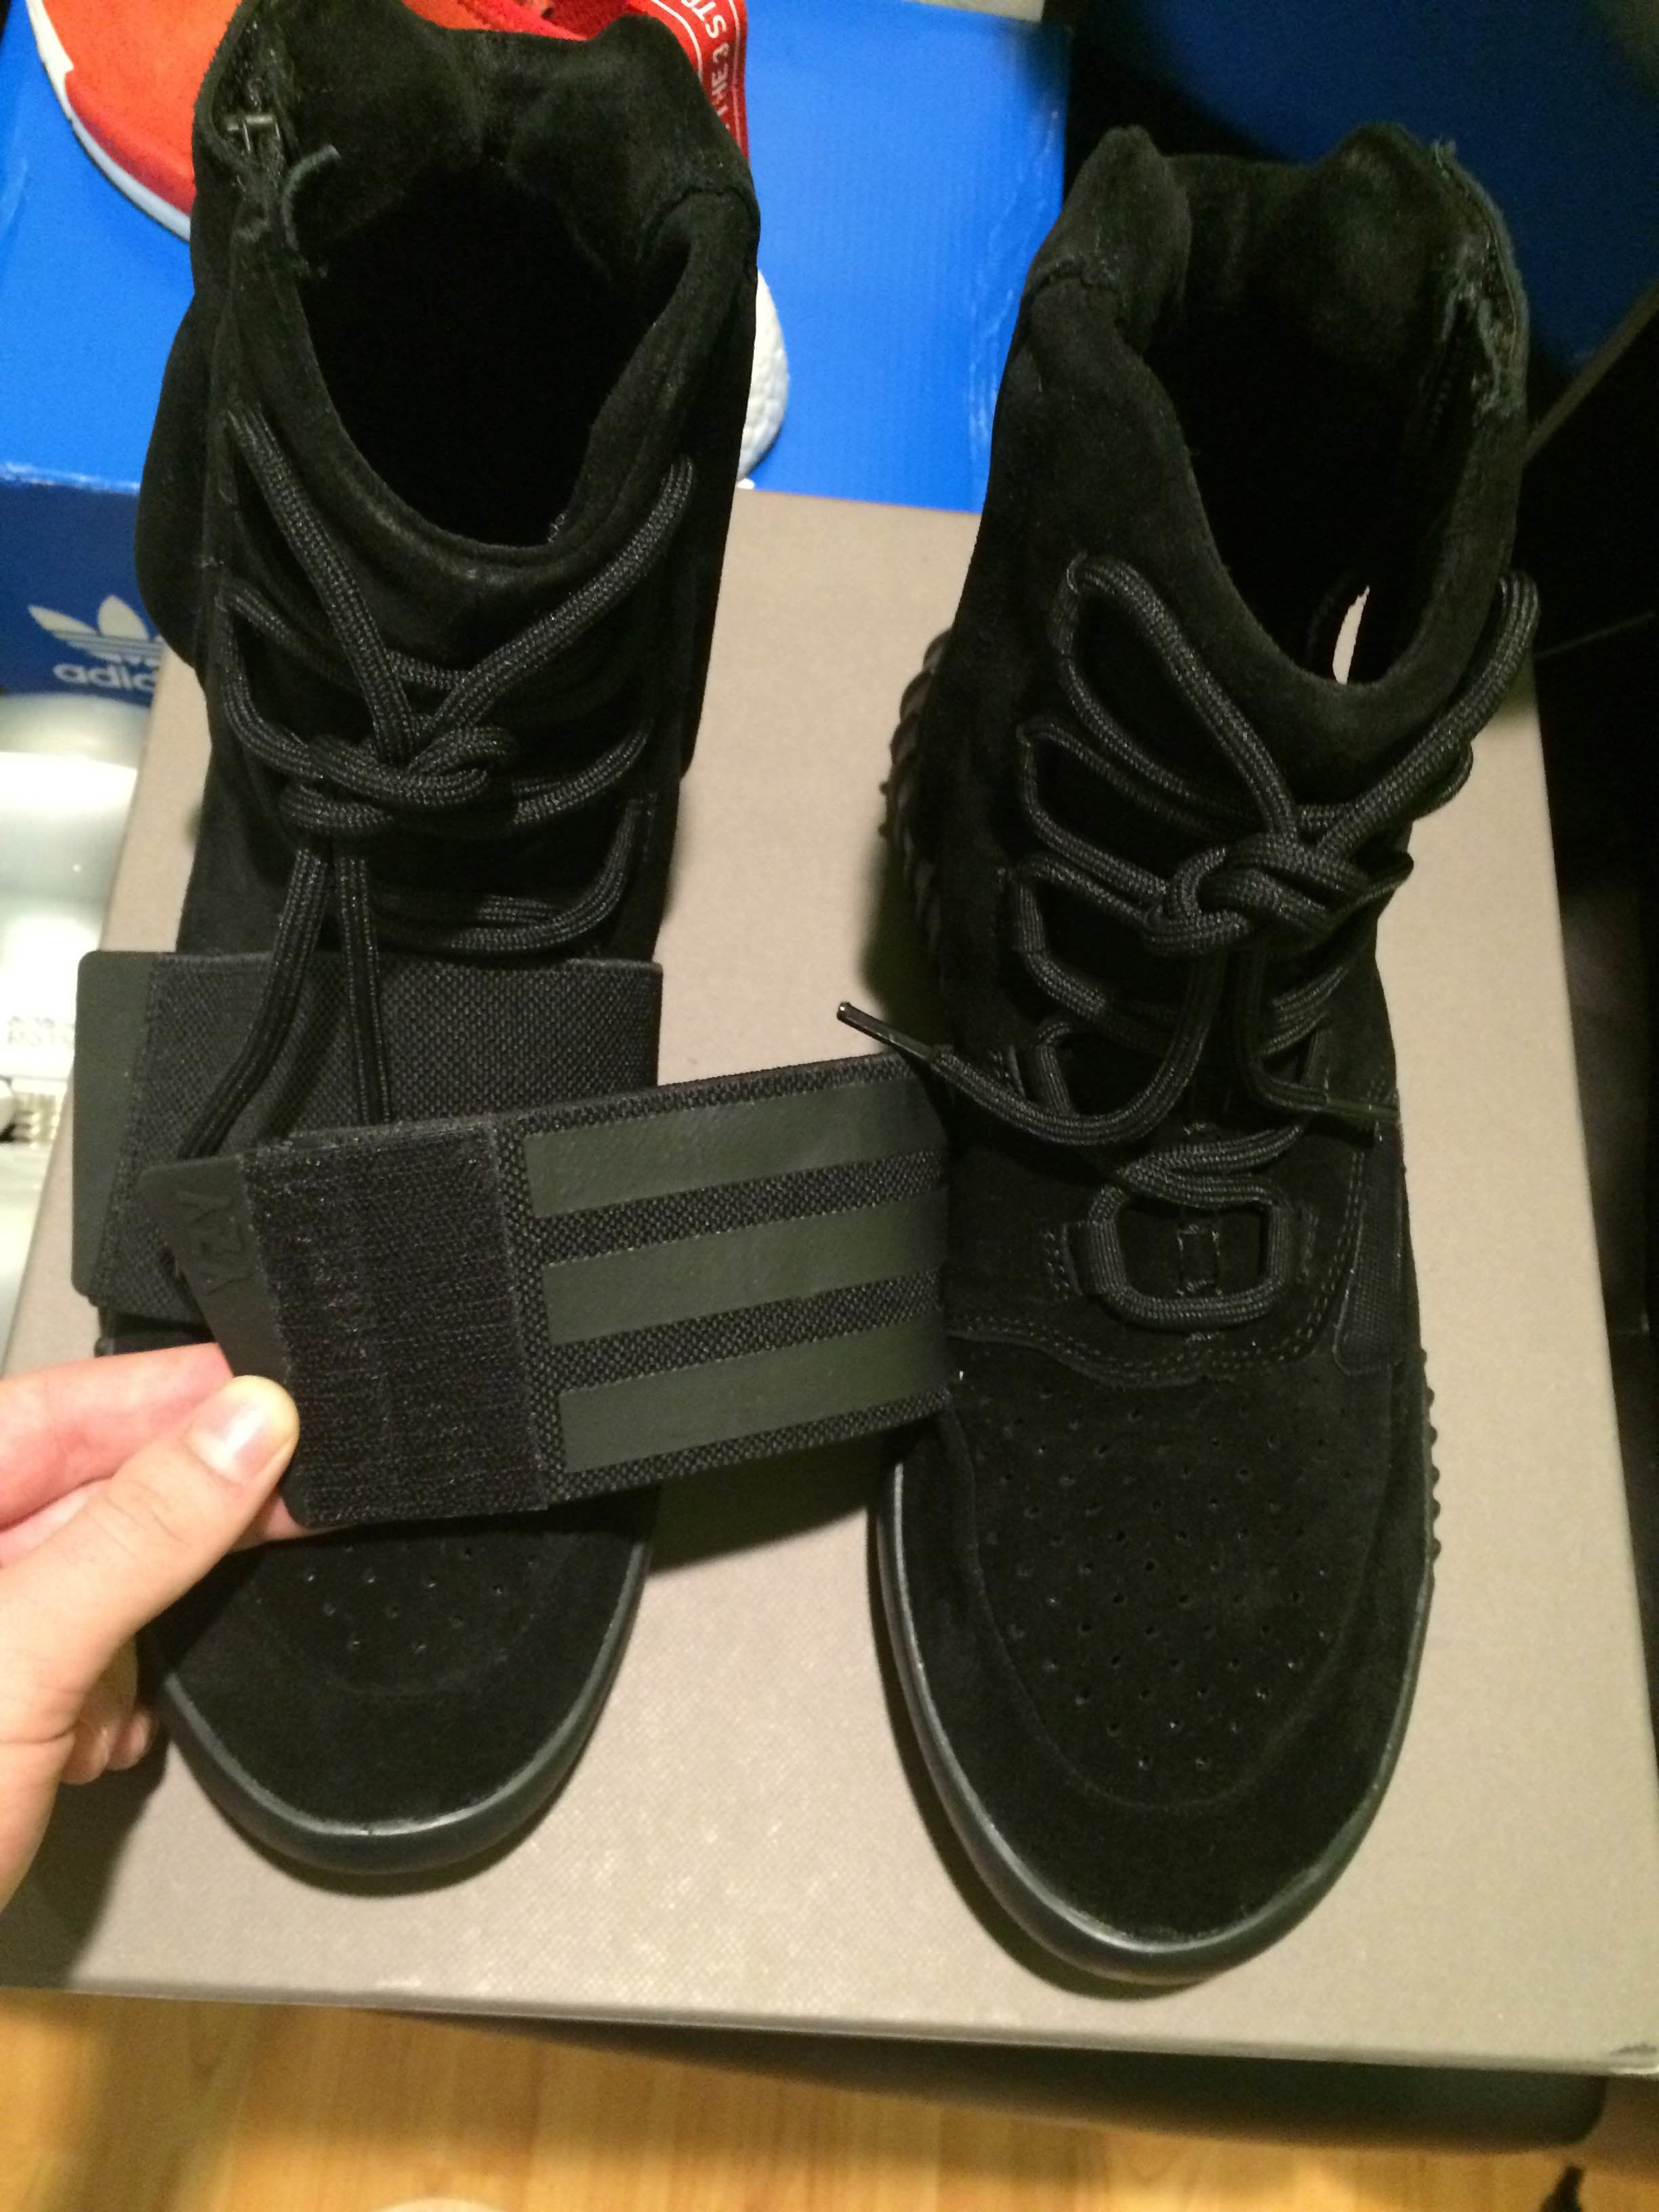 new style f1a33 ed4be 01463766239268img8366  legit check on yeezy 750 black